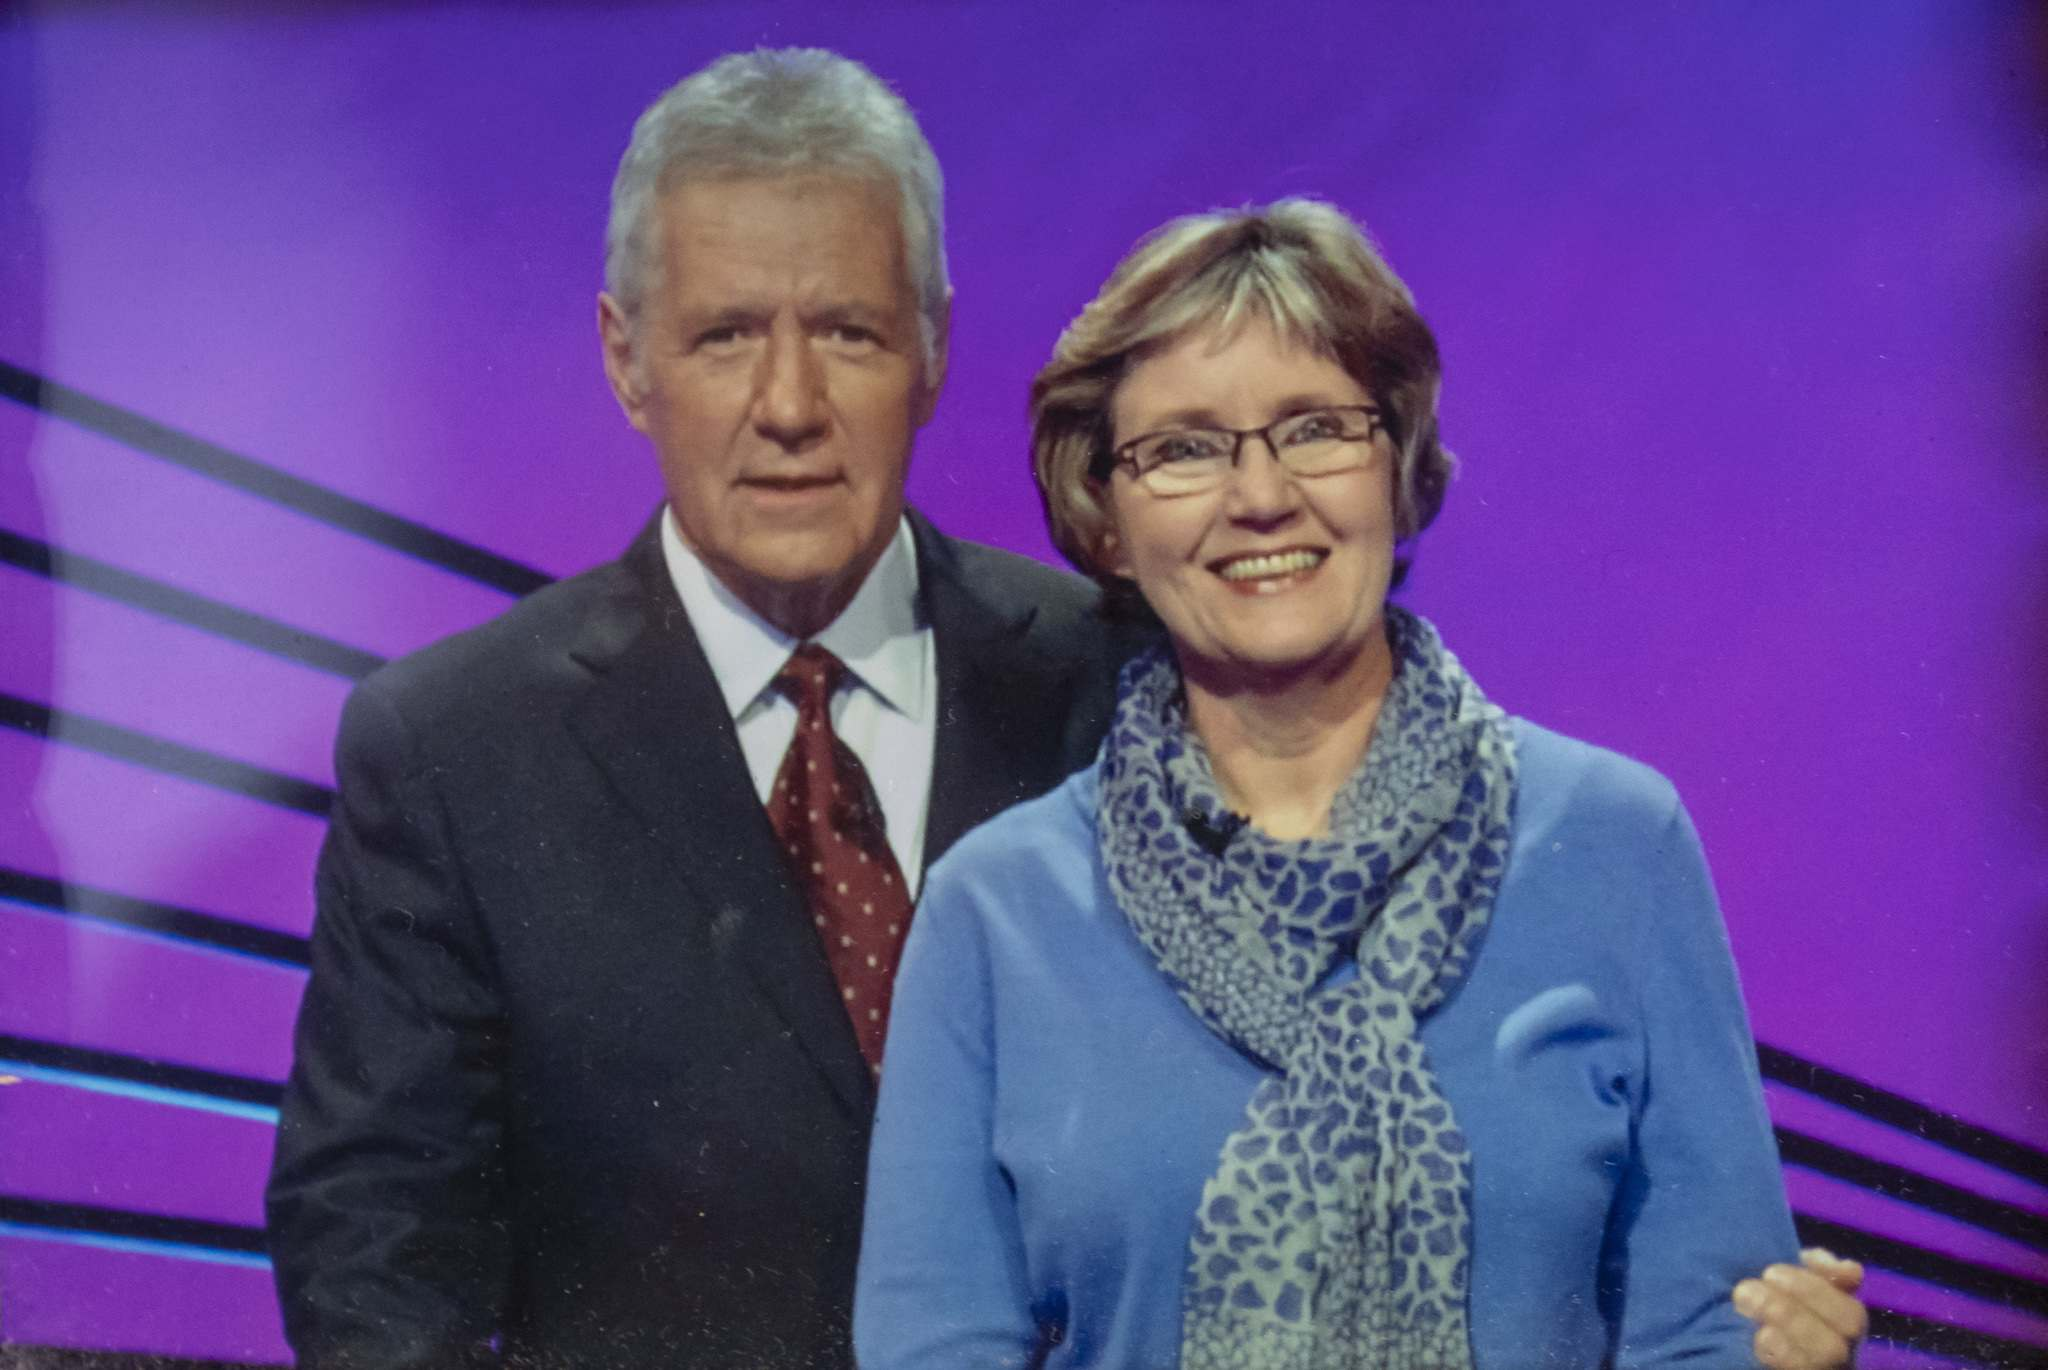 Steadman with Jeopardy! host Alex Trebek.</p>